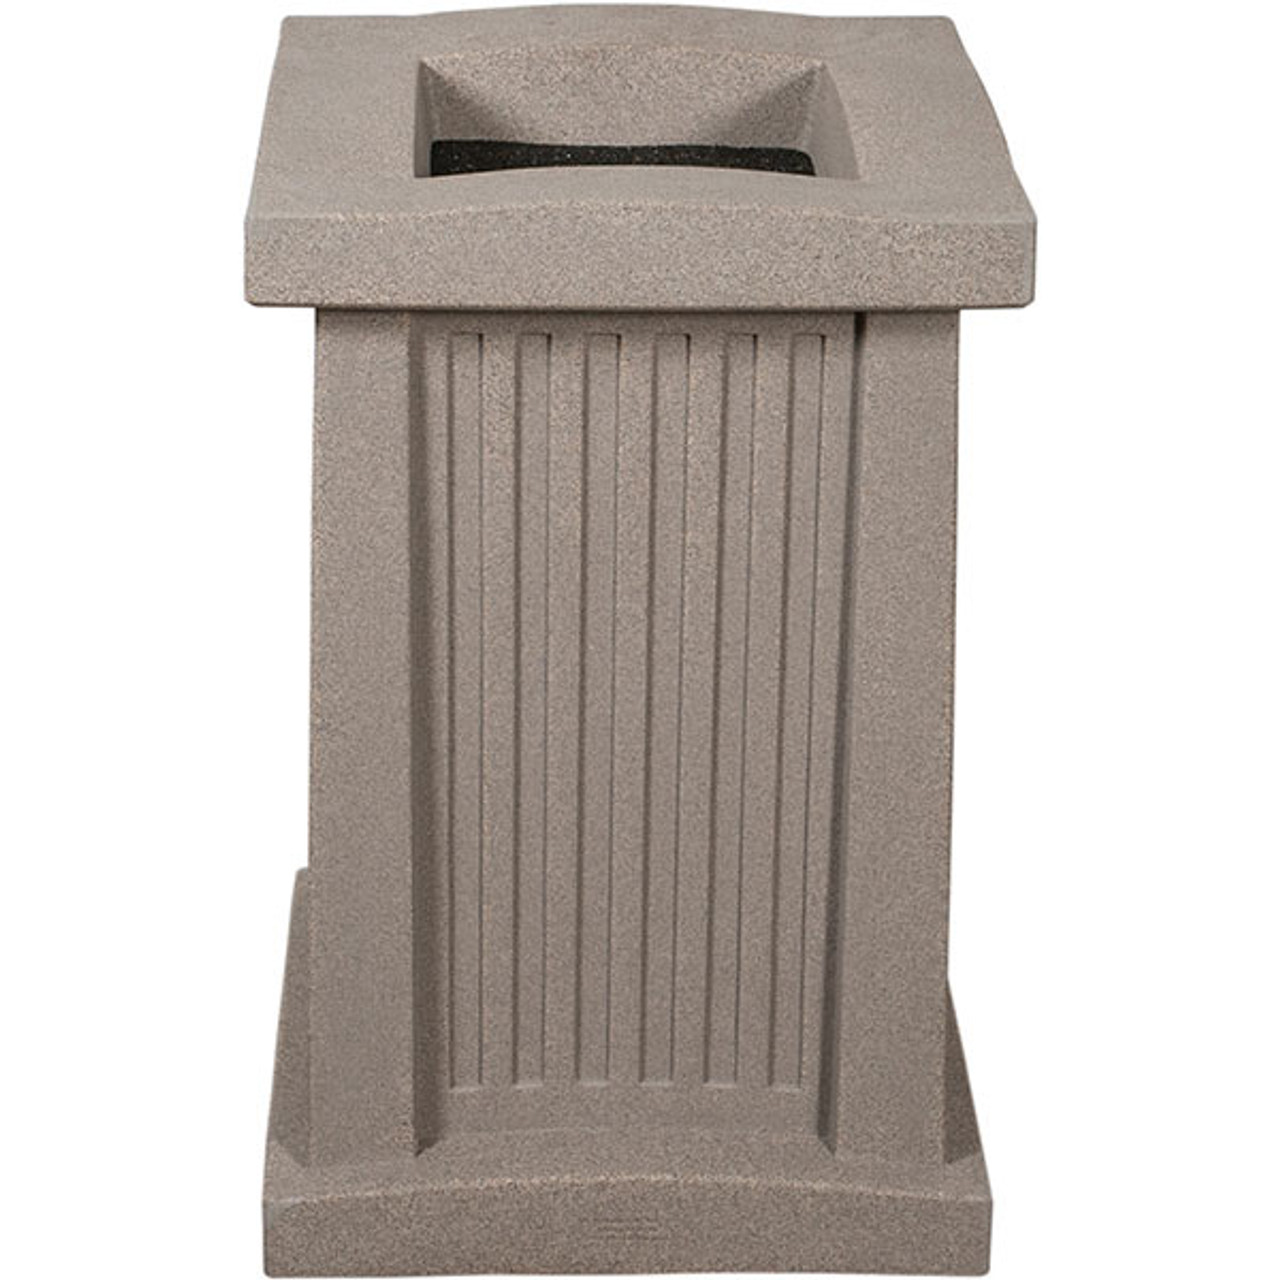 Outdoor Square Plastic Ashtray with Sand Smokers Urn WS2015